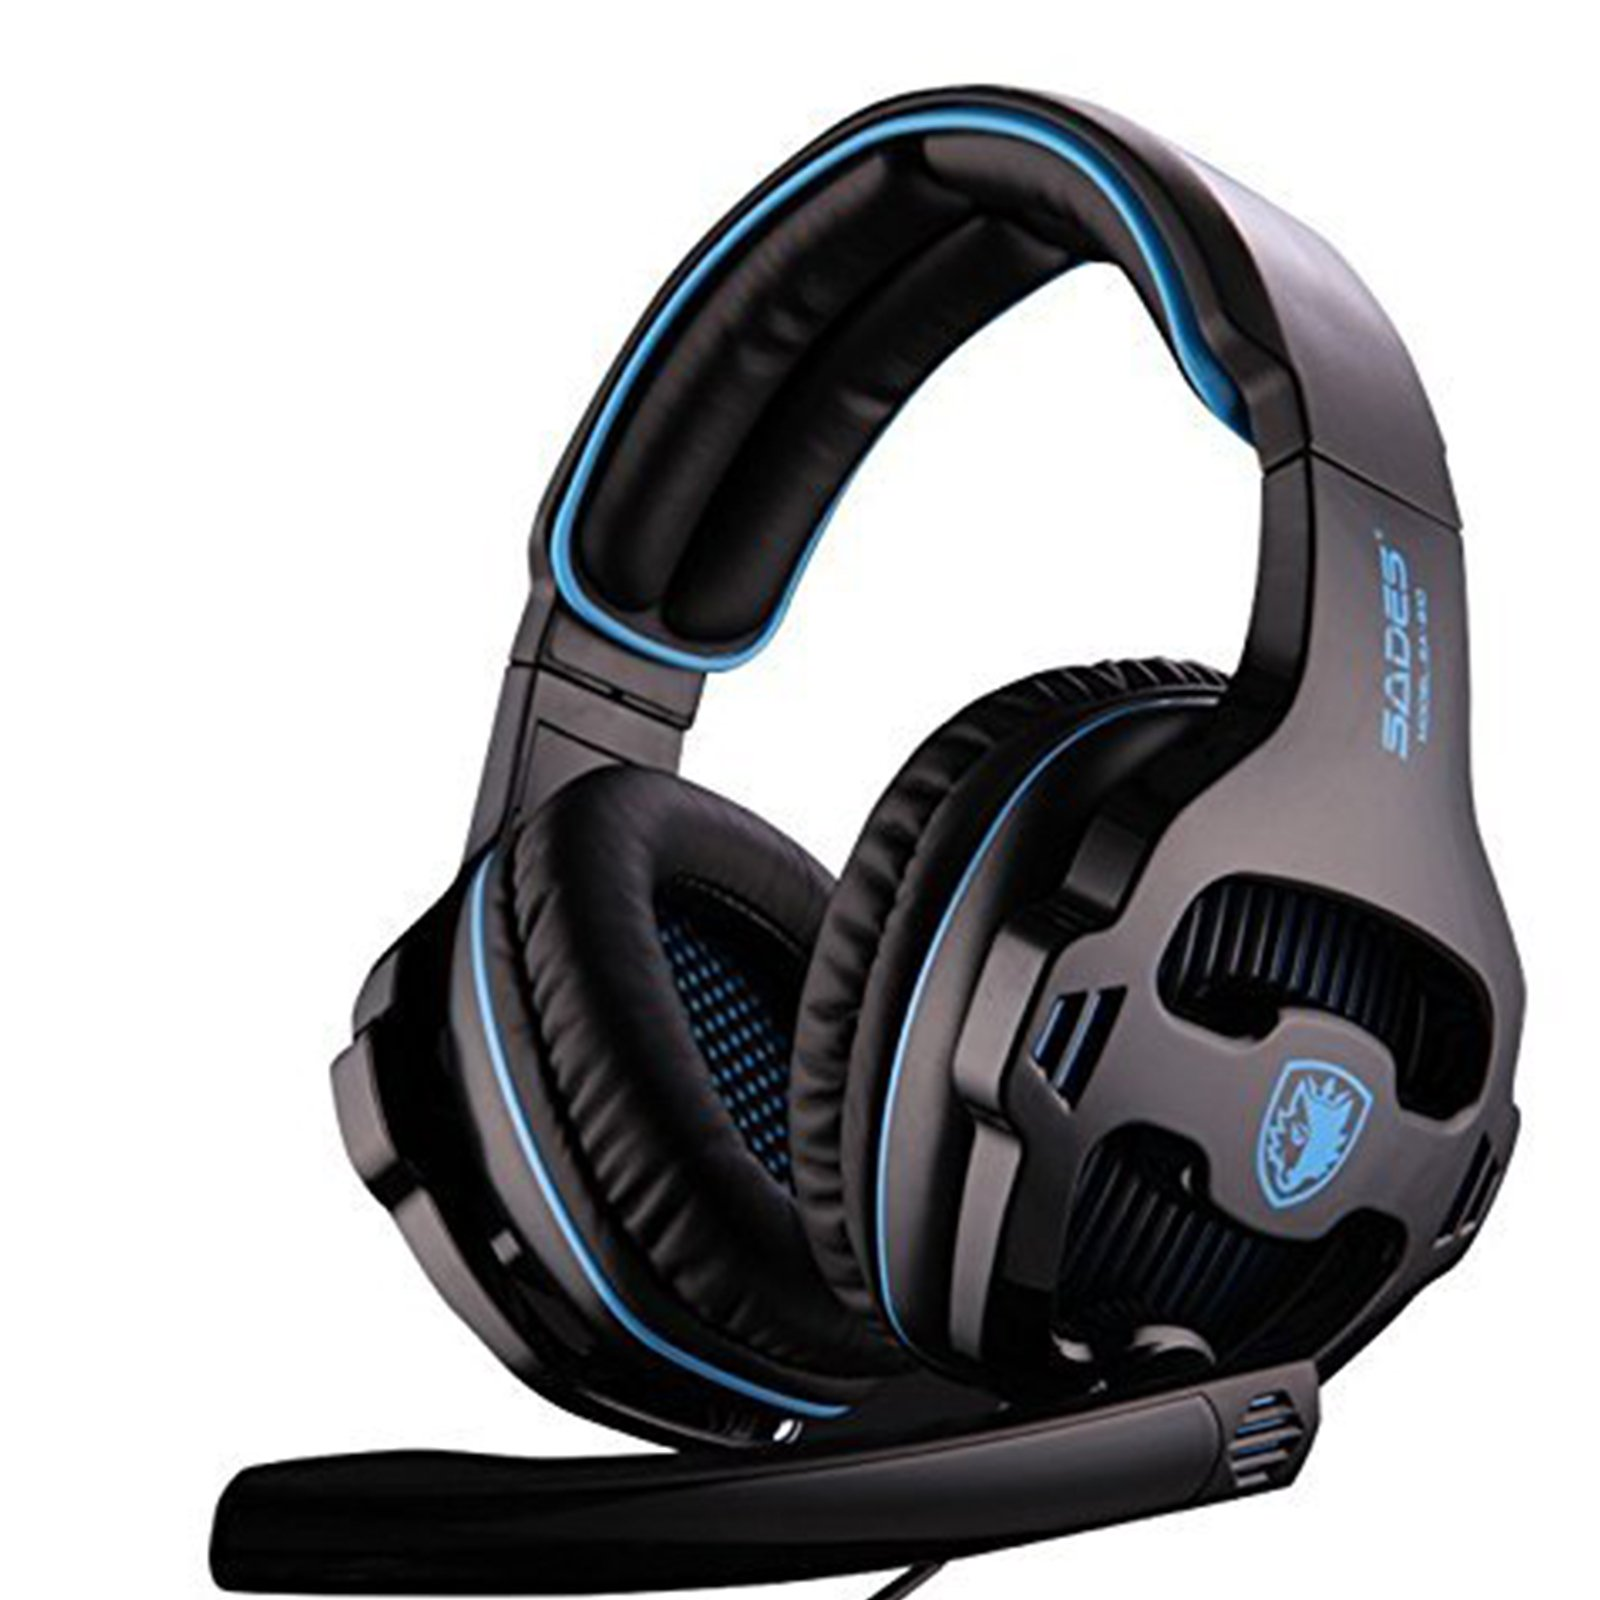 PS4 PC New Xbox One Gaming Headset , SADES 810 Gaming Headphone Stereo Sound 3.5mm Jack Over-ear Headphone with Microphone Volume Control